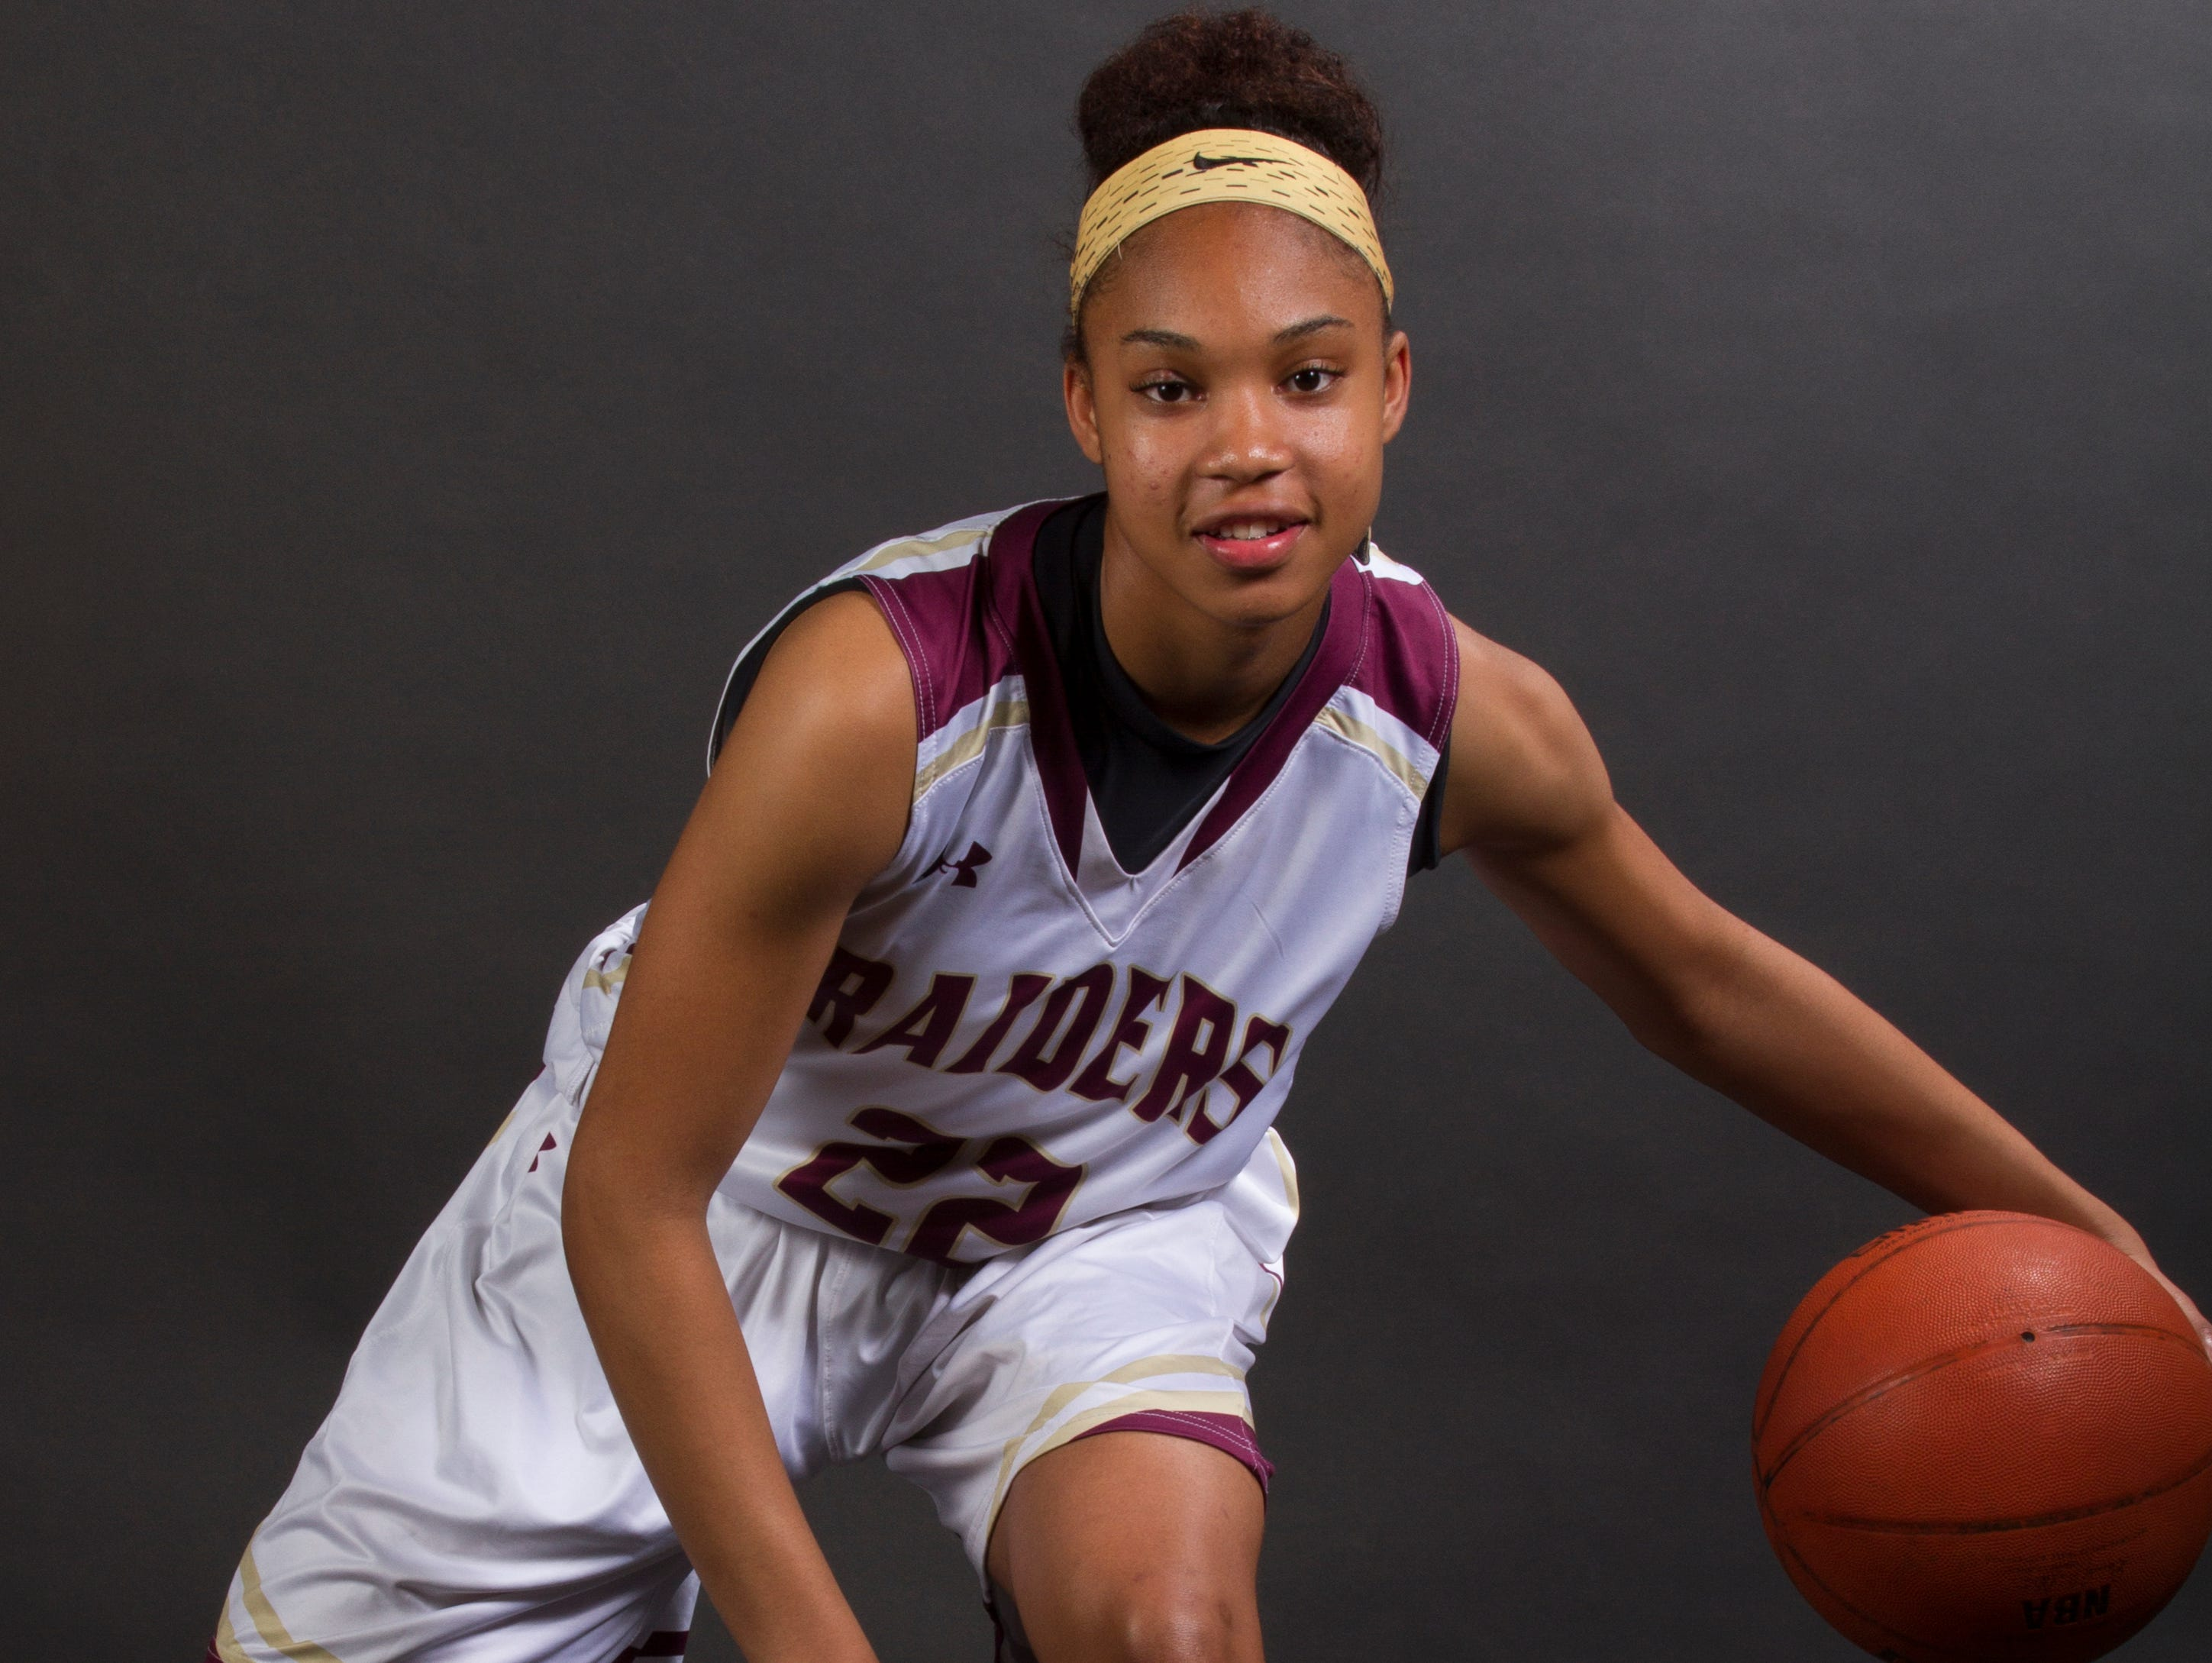 Yasmeen Chang, 14, is a freshman basketball player at Riverdale High School.